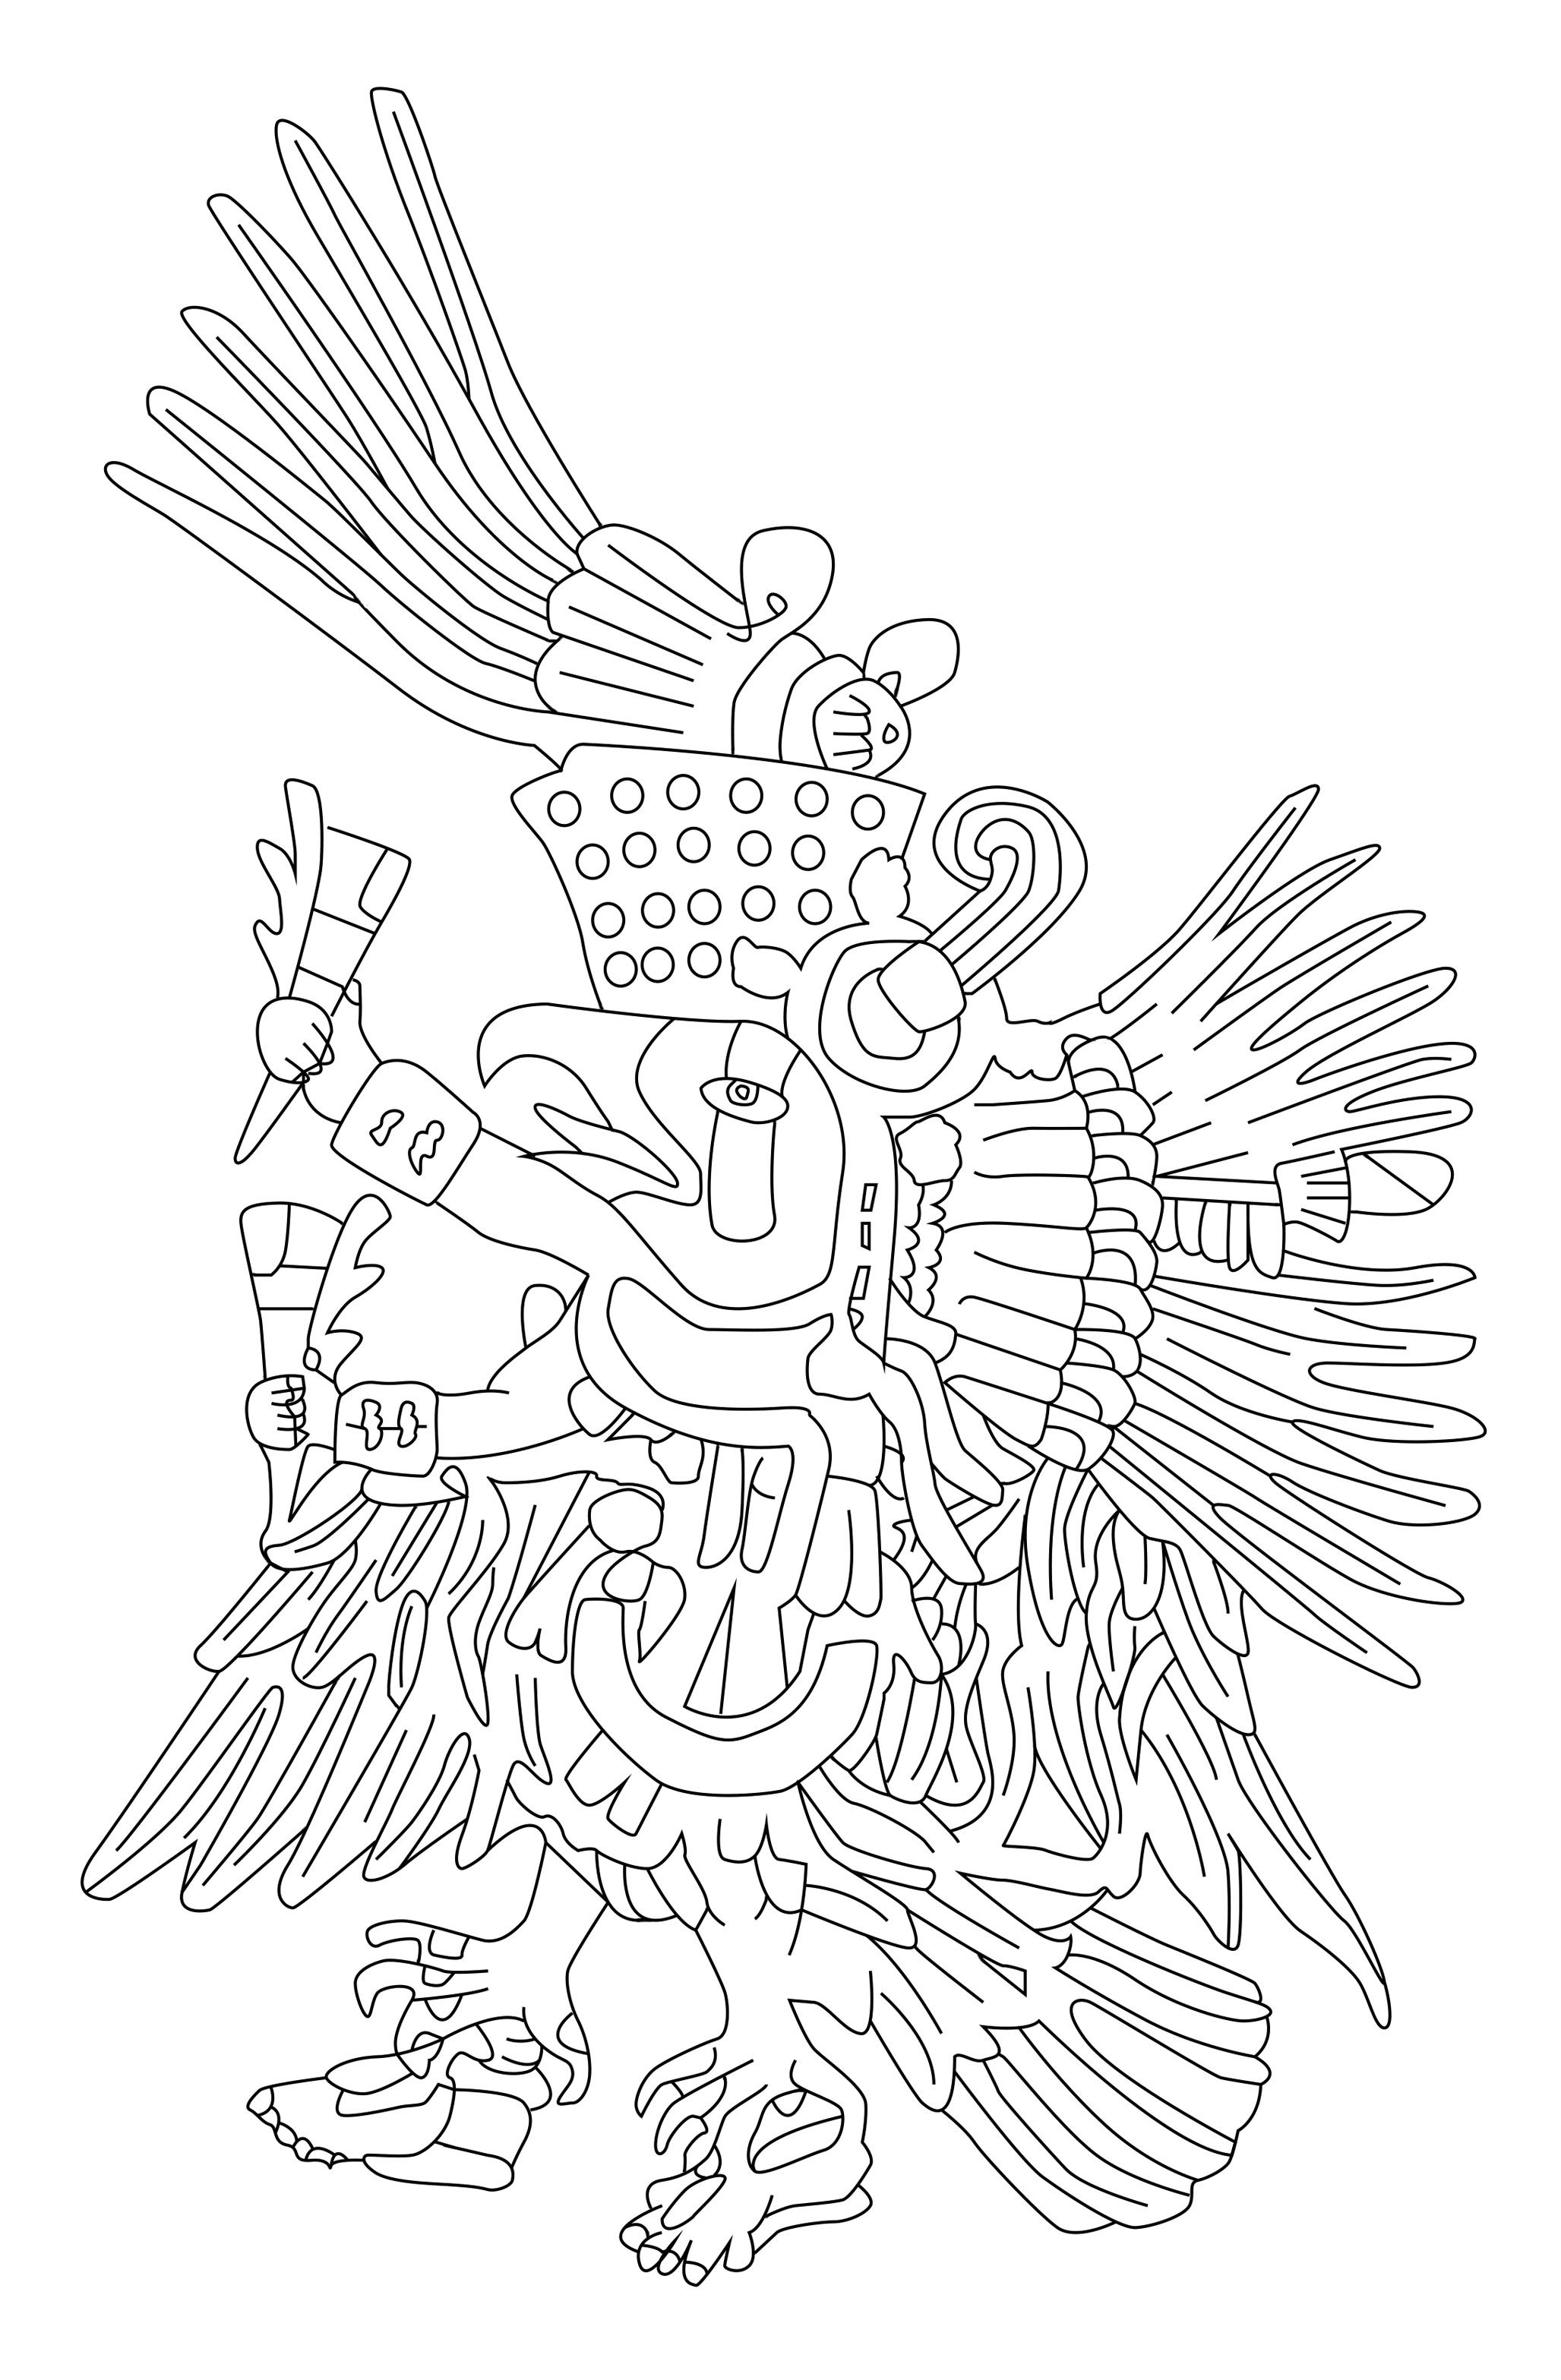 Quetzalcoatl is a Mesoamerican deity whose name comes from the